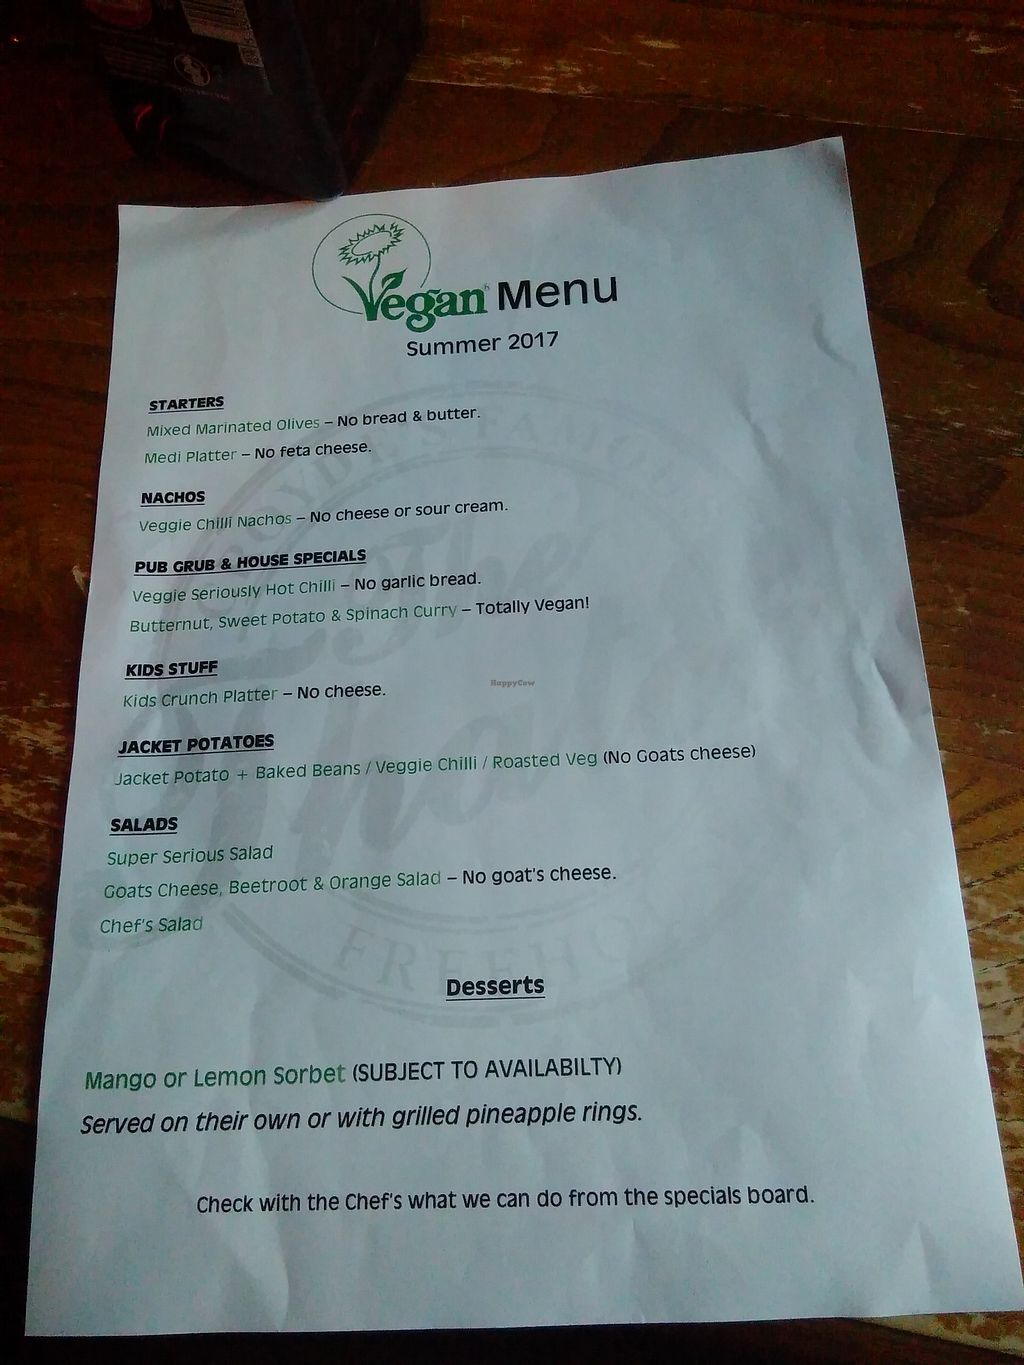 """Photo of Thatch  by <a href=""""/members/profile/starcide"""">starcide</a> <br/>New vegan menu  <br/> November 6, 2017  - <a href='/contact/abuse/image/27549/322435'>Report</a>"""